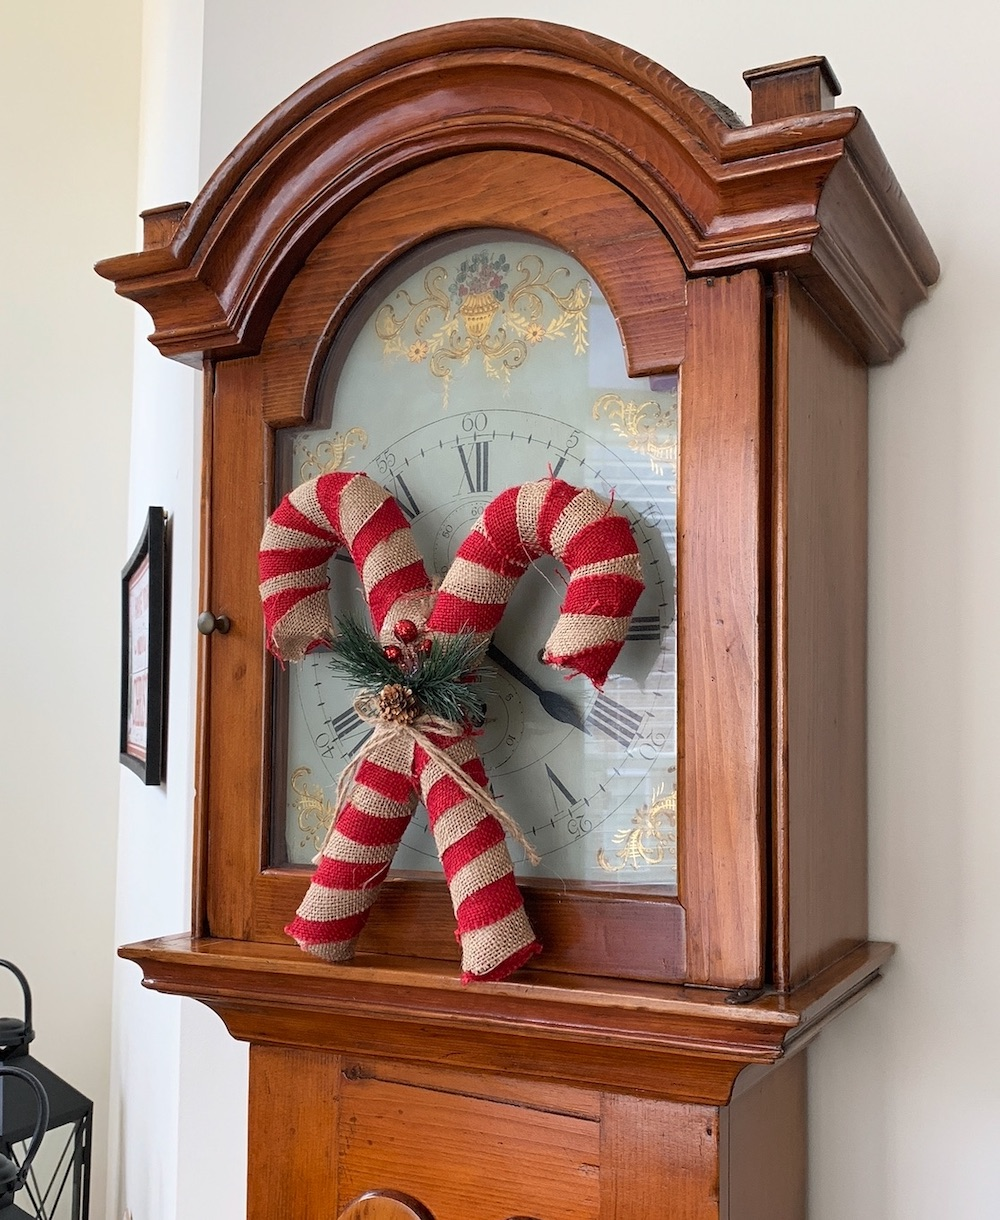 Burlap Covered Candy Canes #Decor #ChristmasDecor #RusticChristmas #RusticChristmasDecor #Christmas ChristmasCabin #ChristmasLodge #ChristmasAccents #HolidayDecor